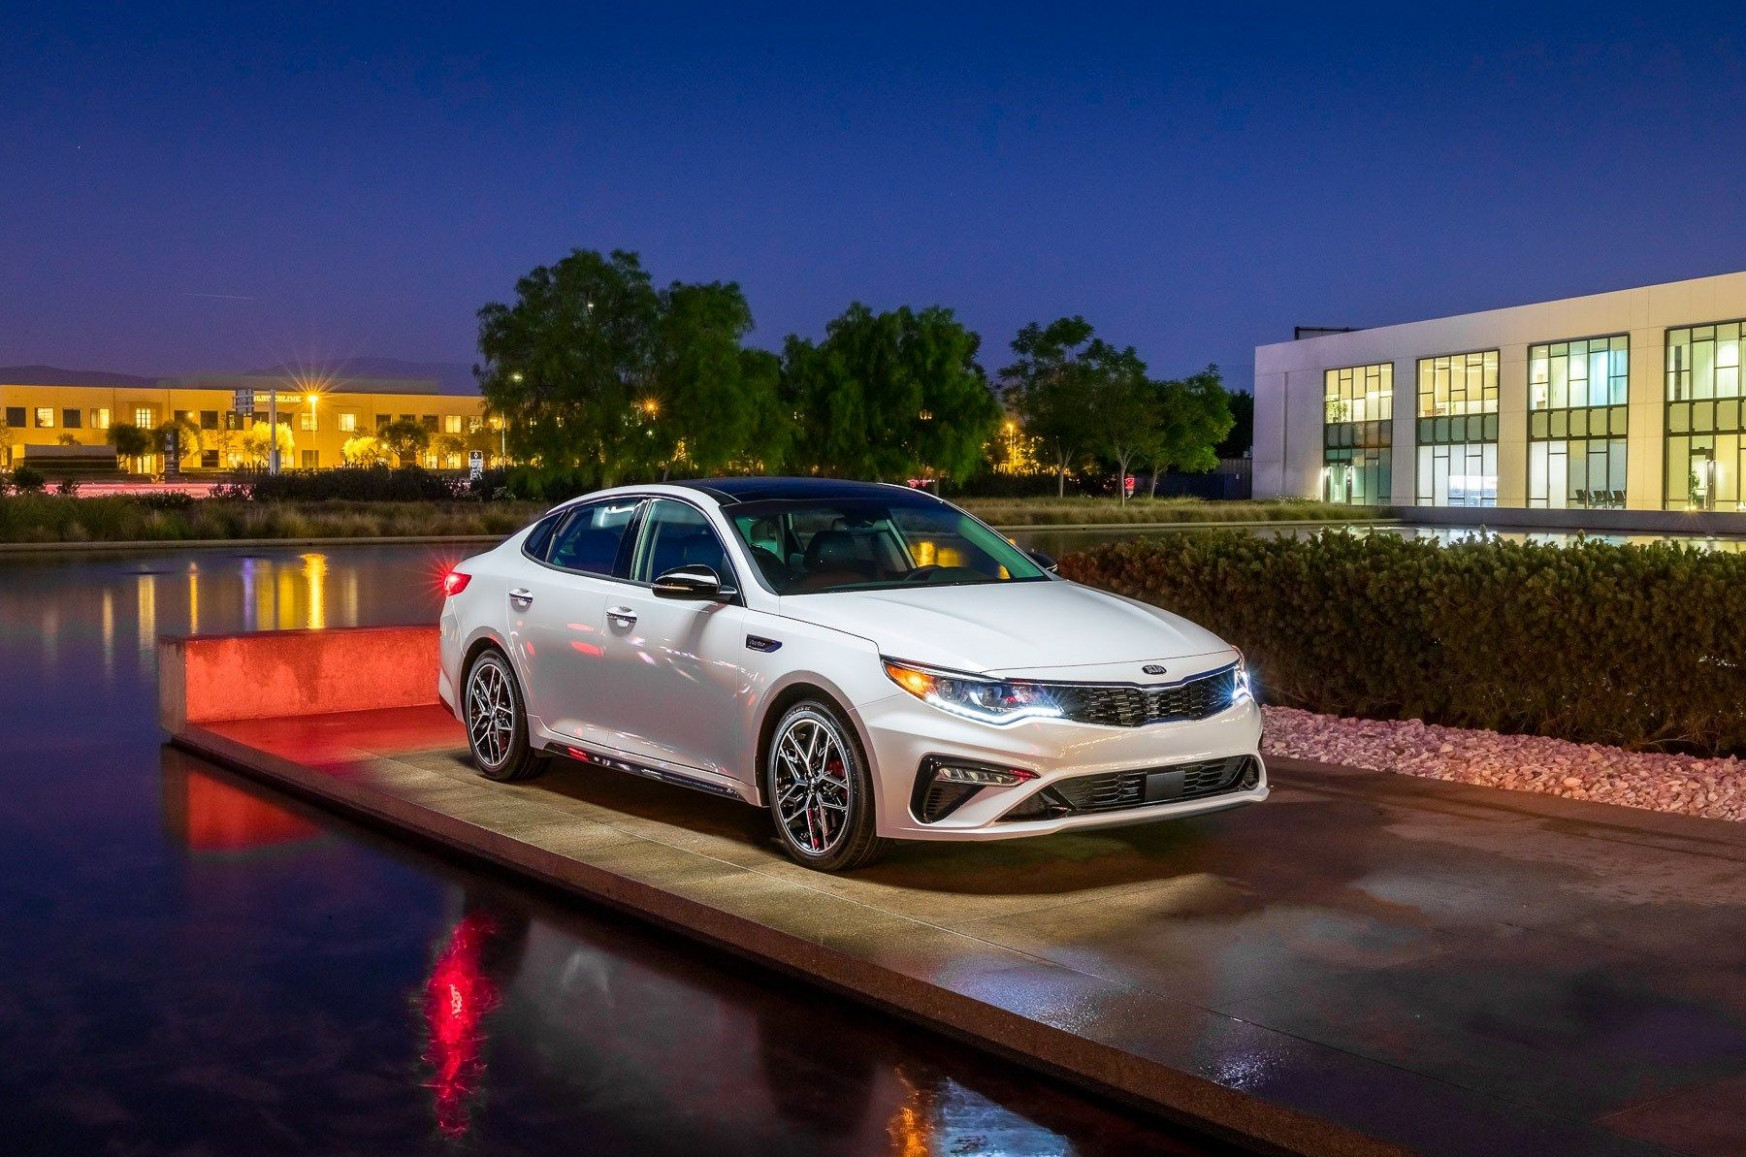 9 Kia Optima Review, Pricing, and Specs